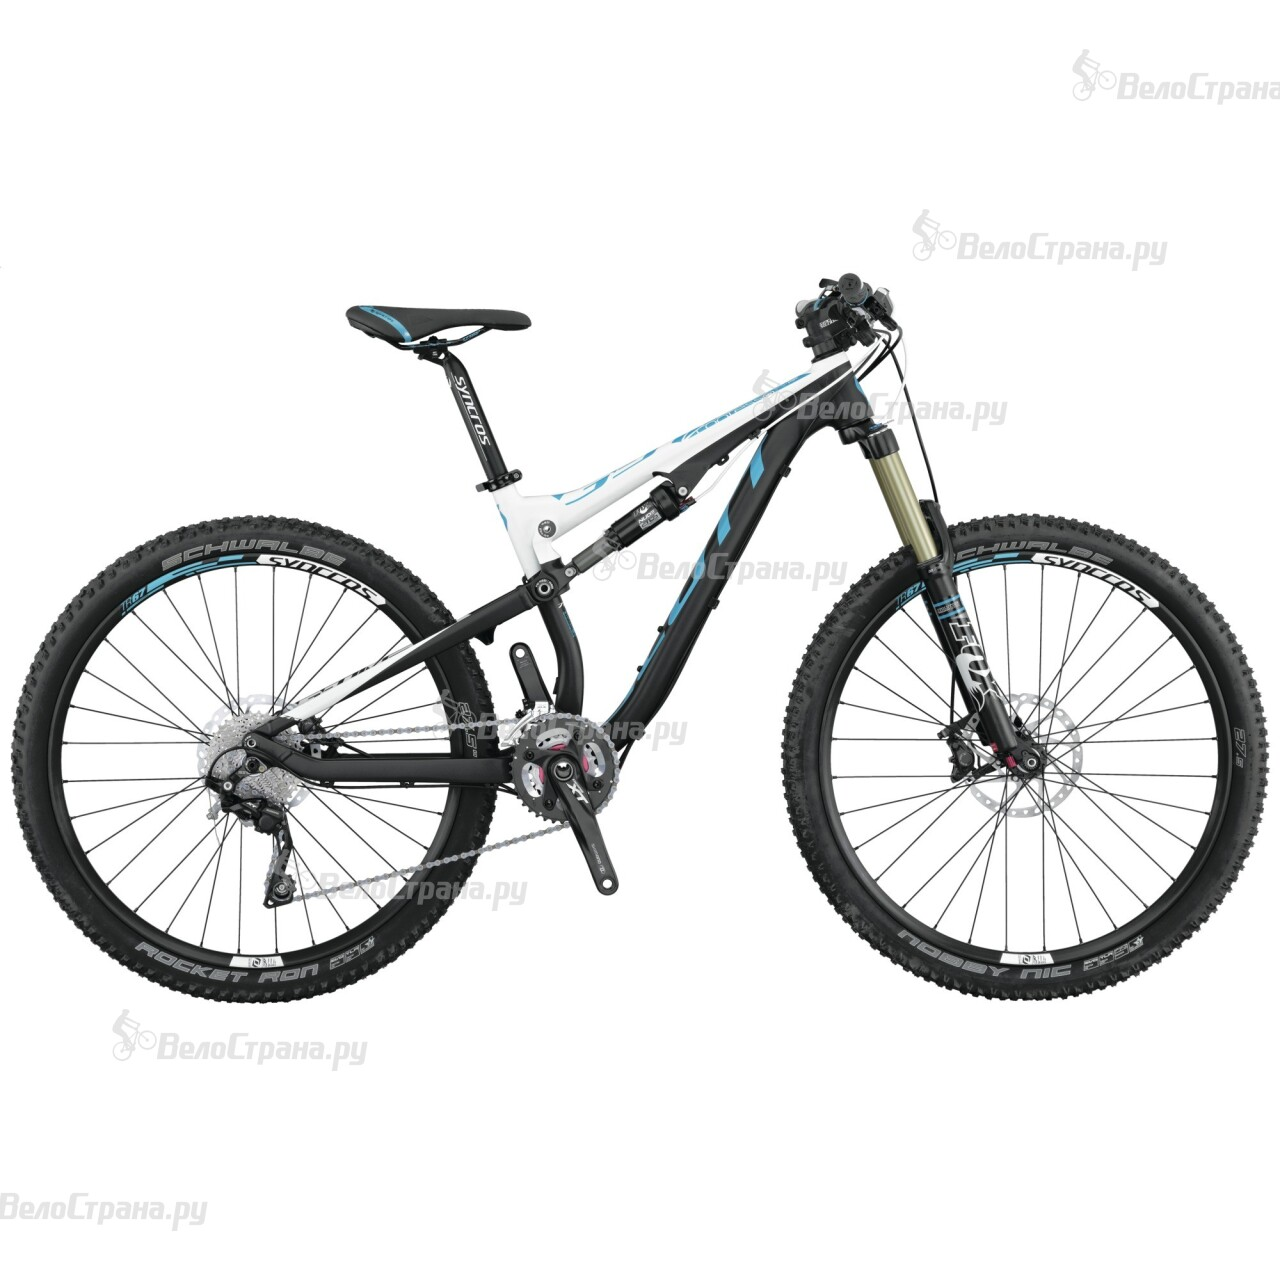 Велосипед Scott Contessa Genius 710 (2015) велосипед scott contessa genius 700 2015